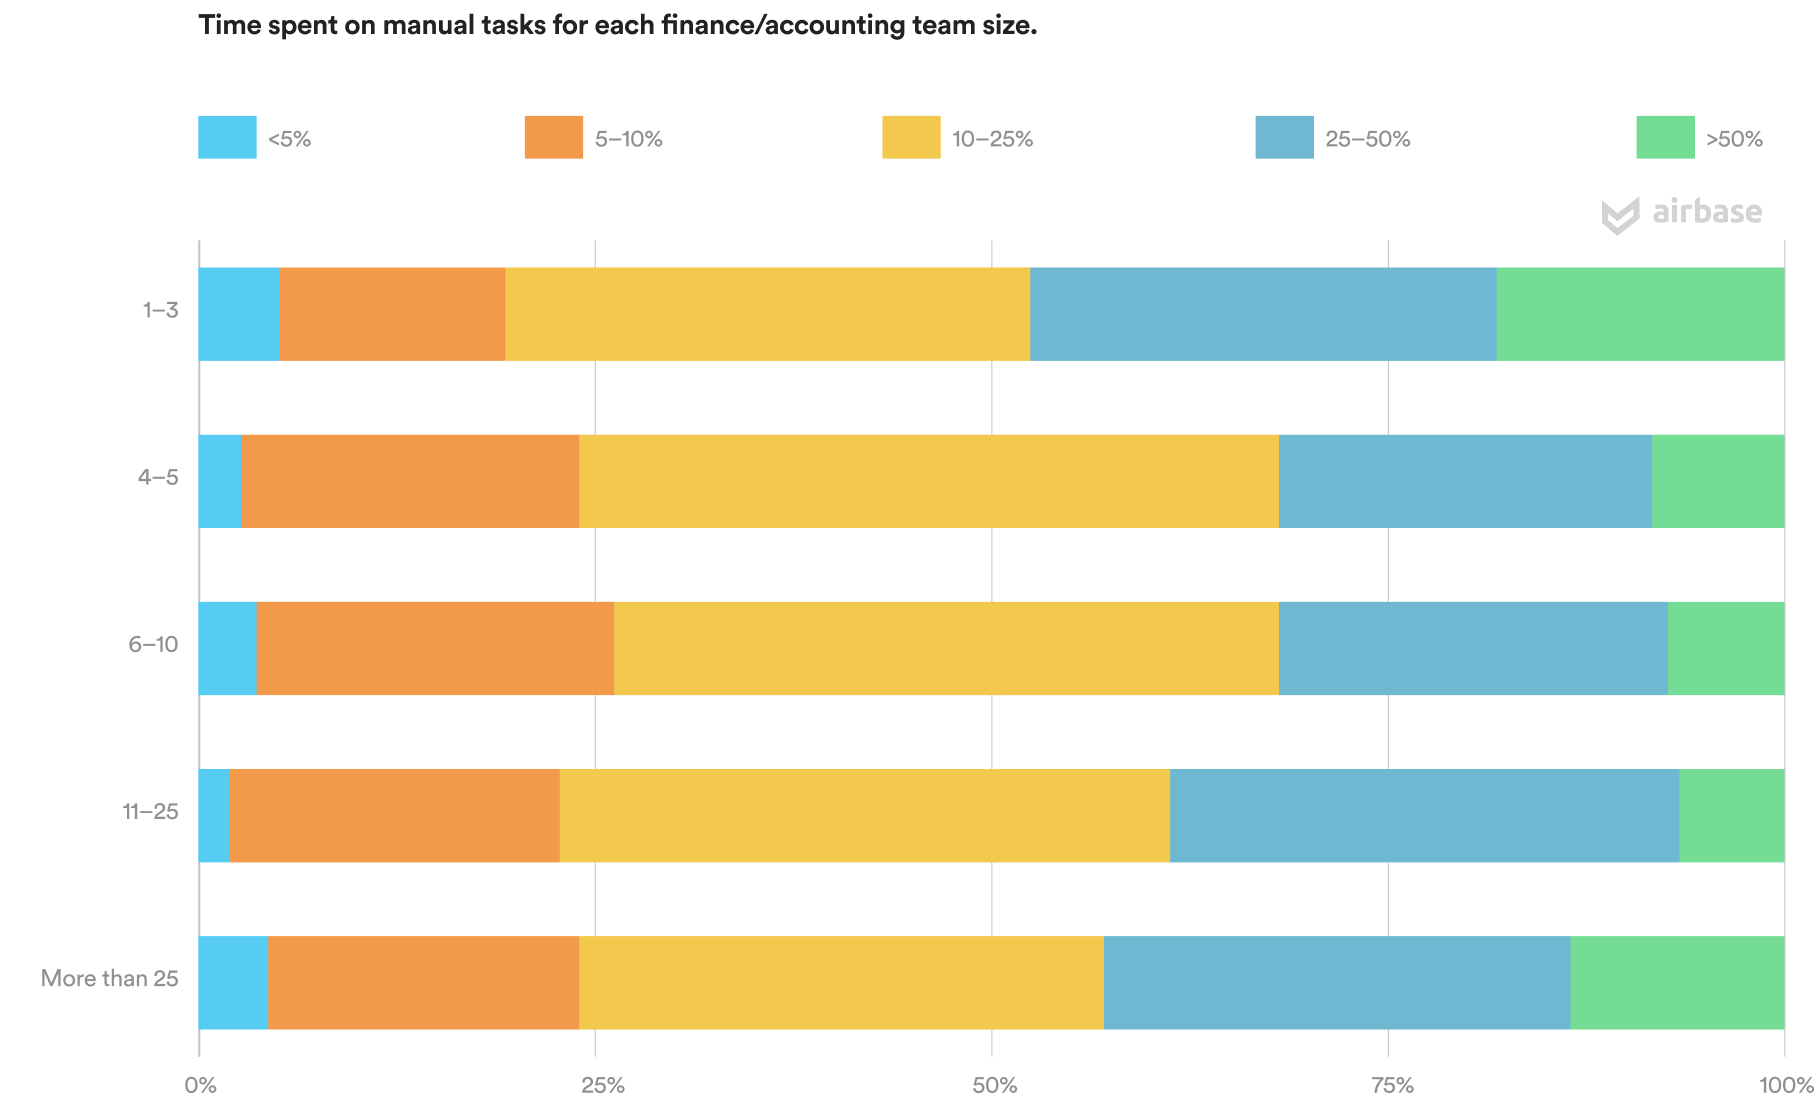 Time spent on manual tasks for each finance/accounting team size.